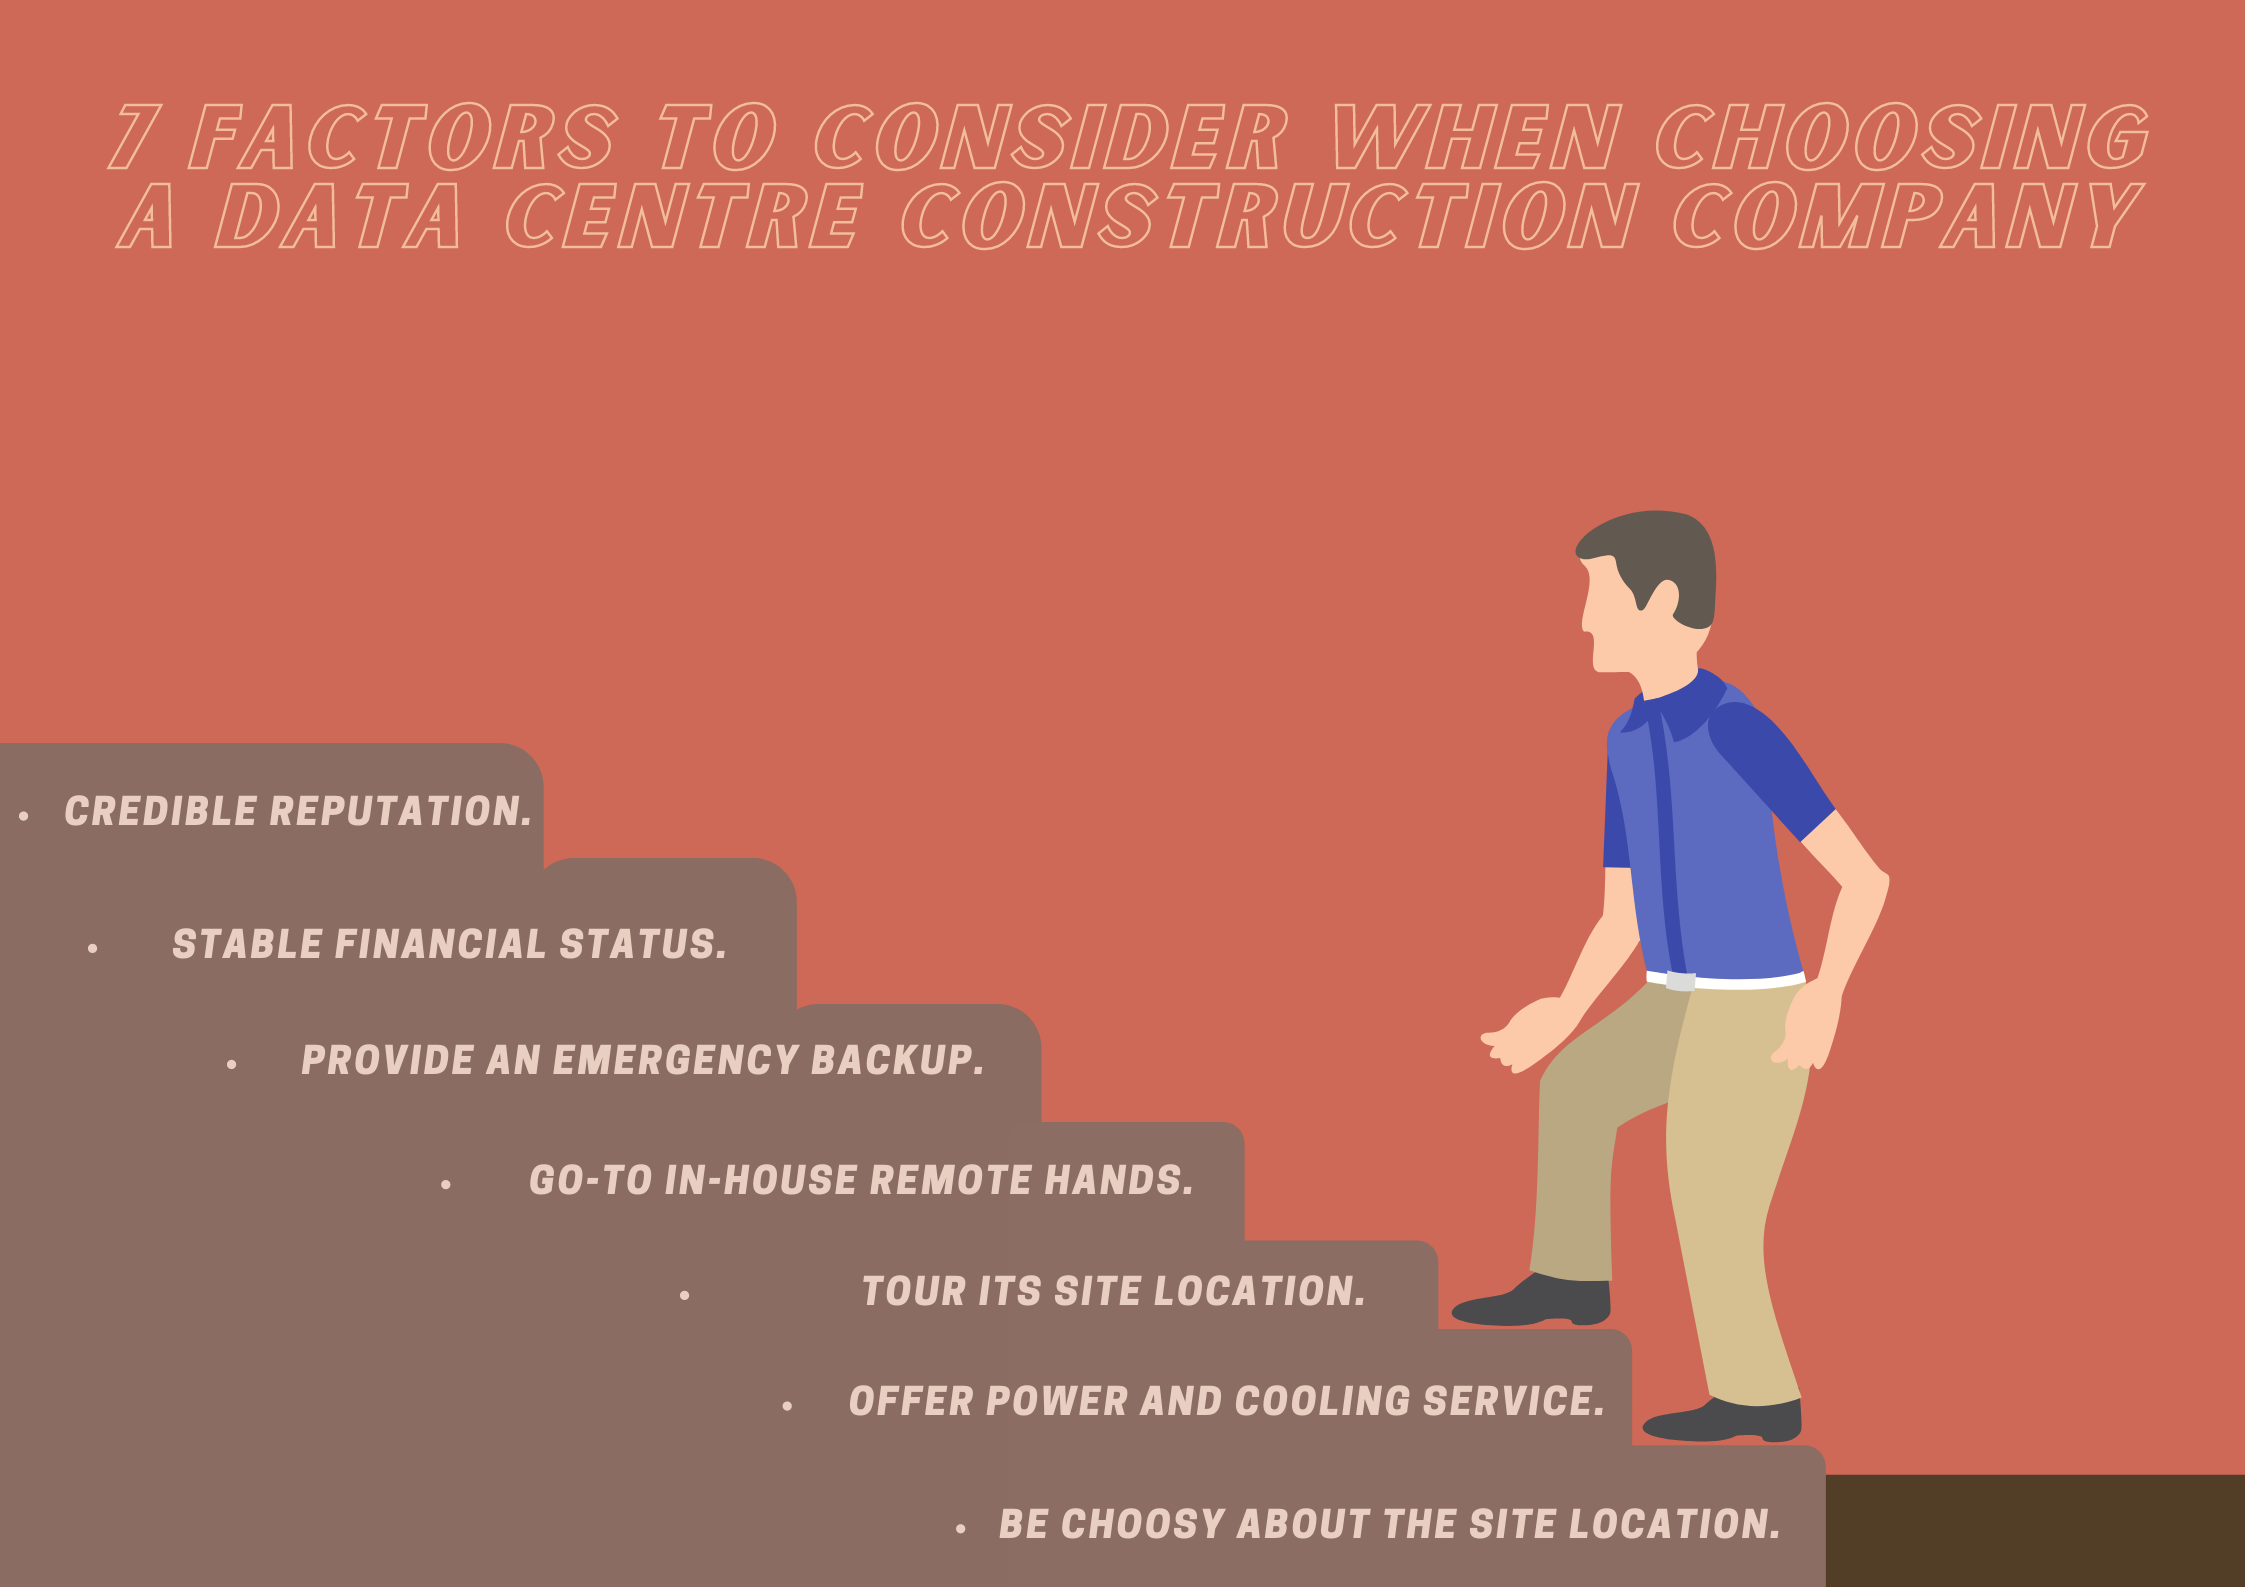 7-Factors-to-Consider-When-Choosing-a-Data-Centre-Construction-Company